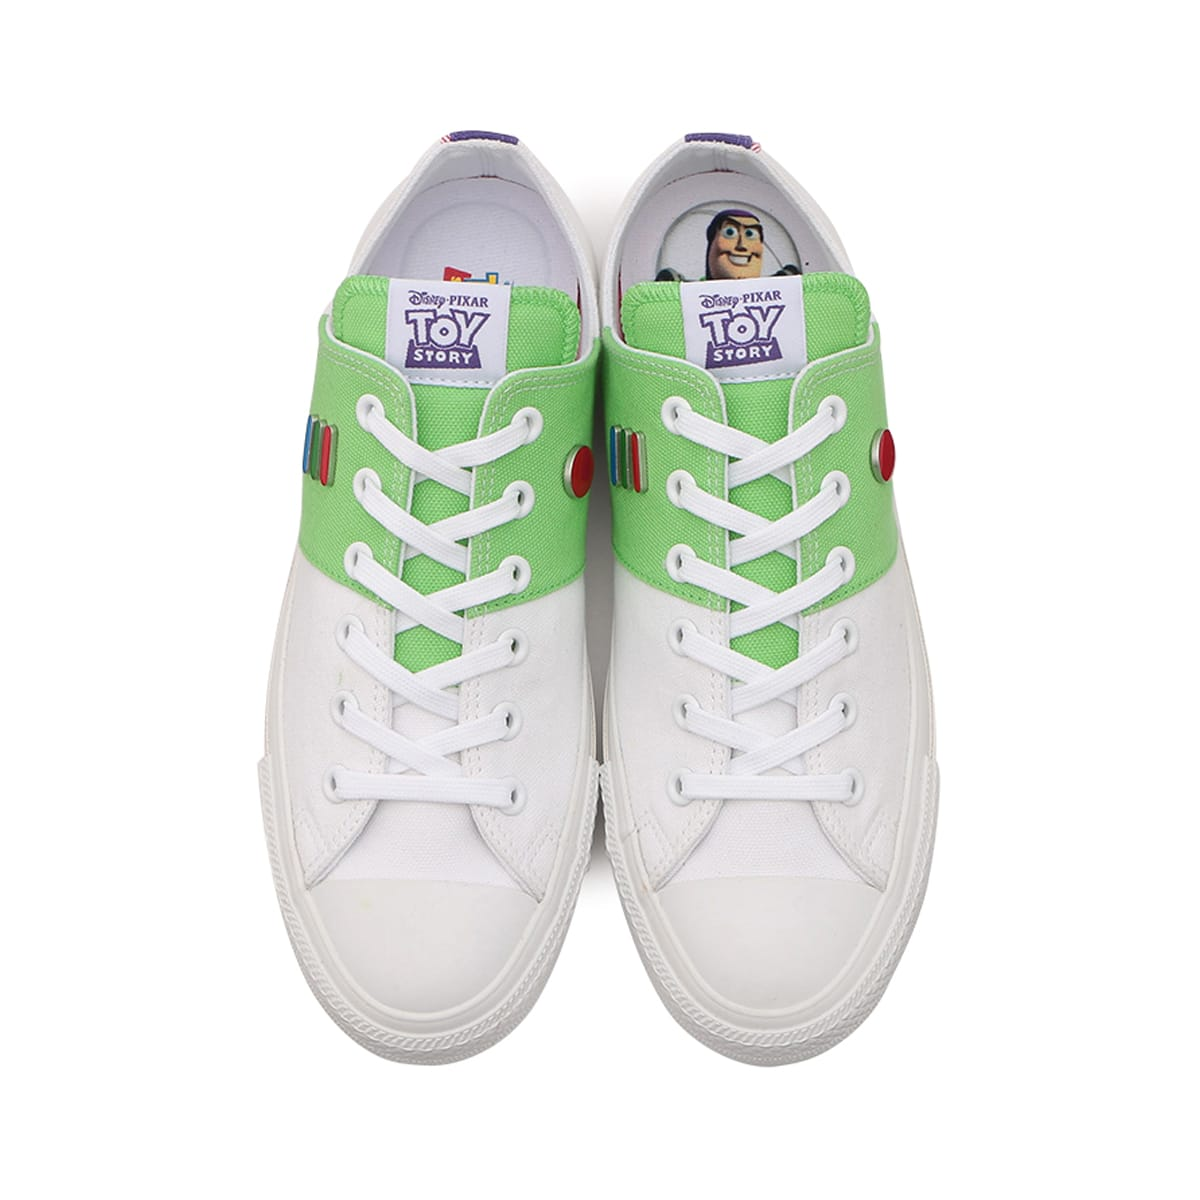 Toy Story x Converse Chuck Taylor All Star Low 32862650 3